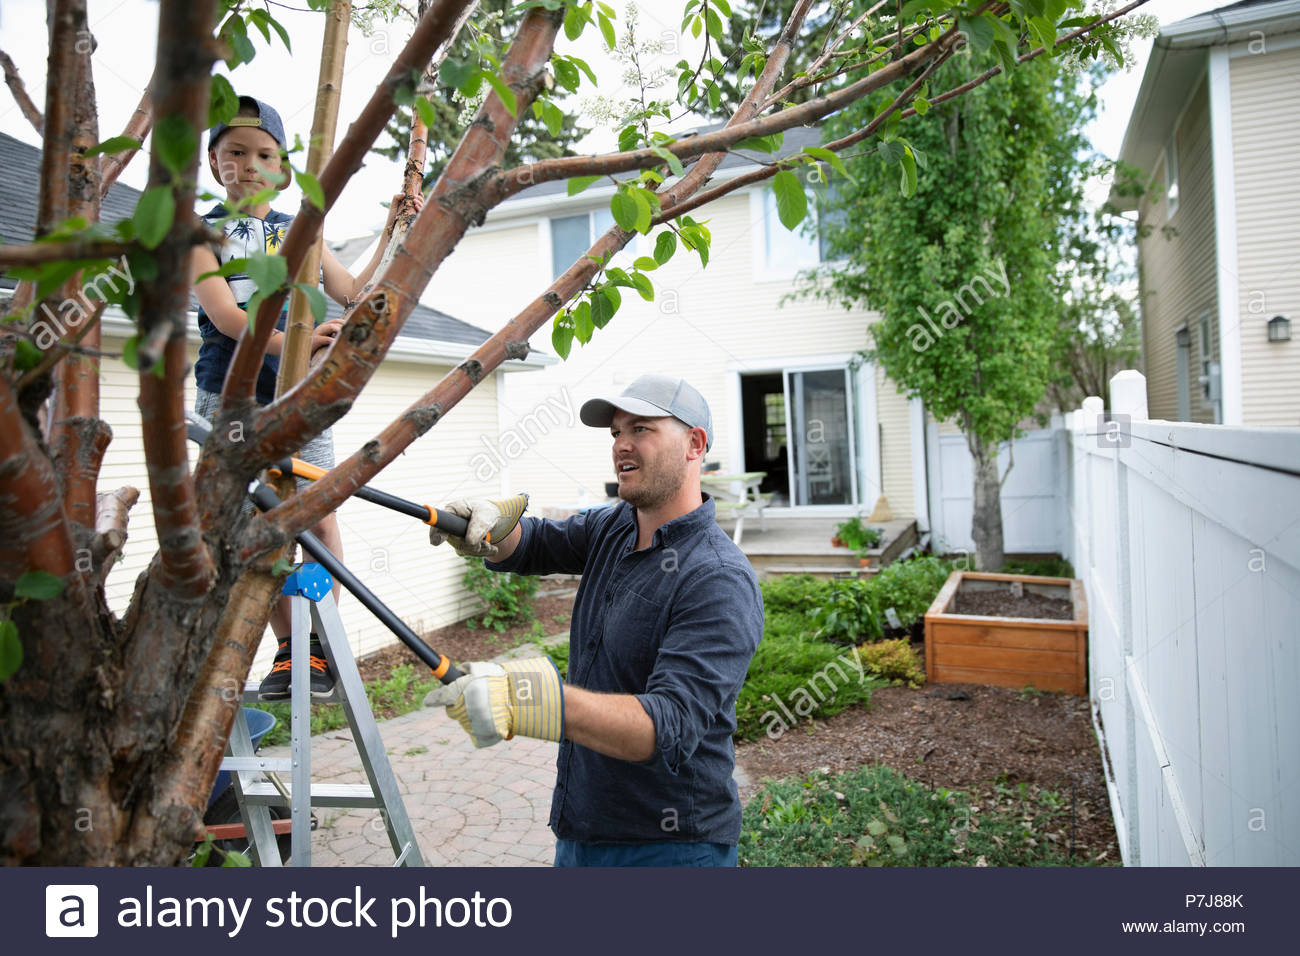 Father and son doing yard work, pruning tree in back yard - Stock Image